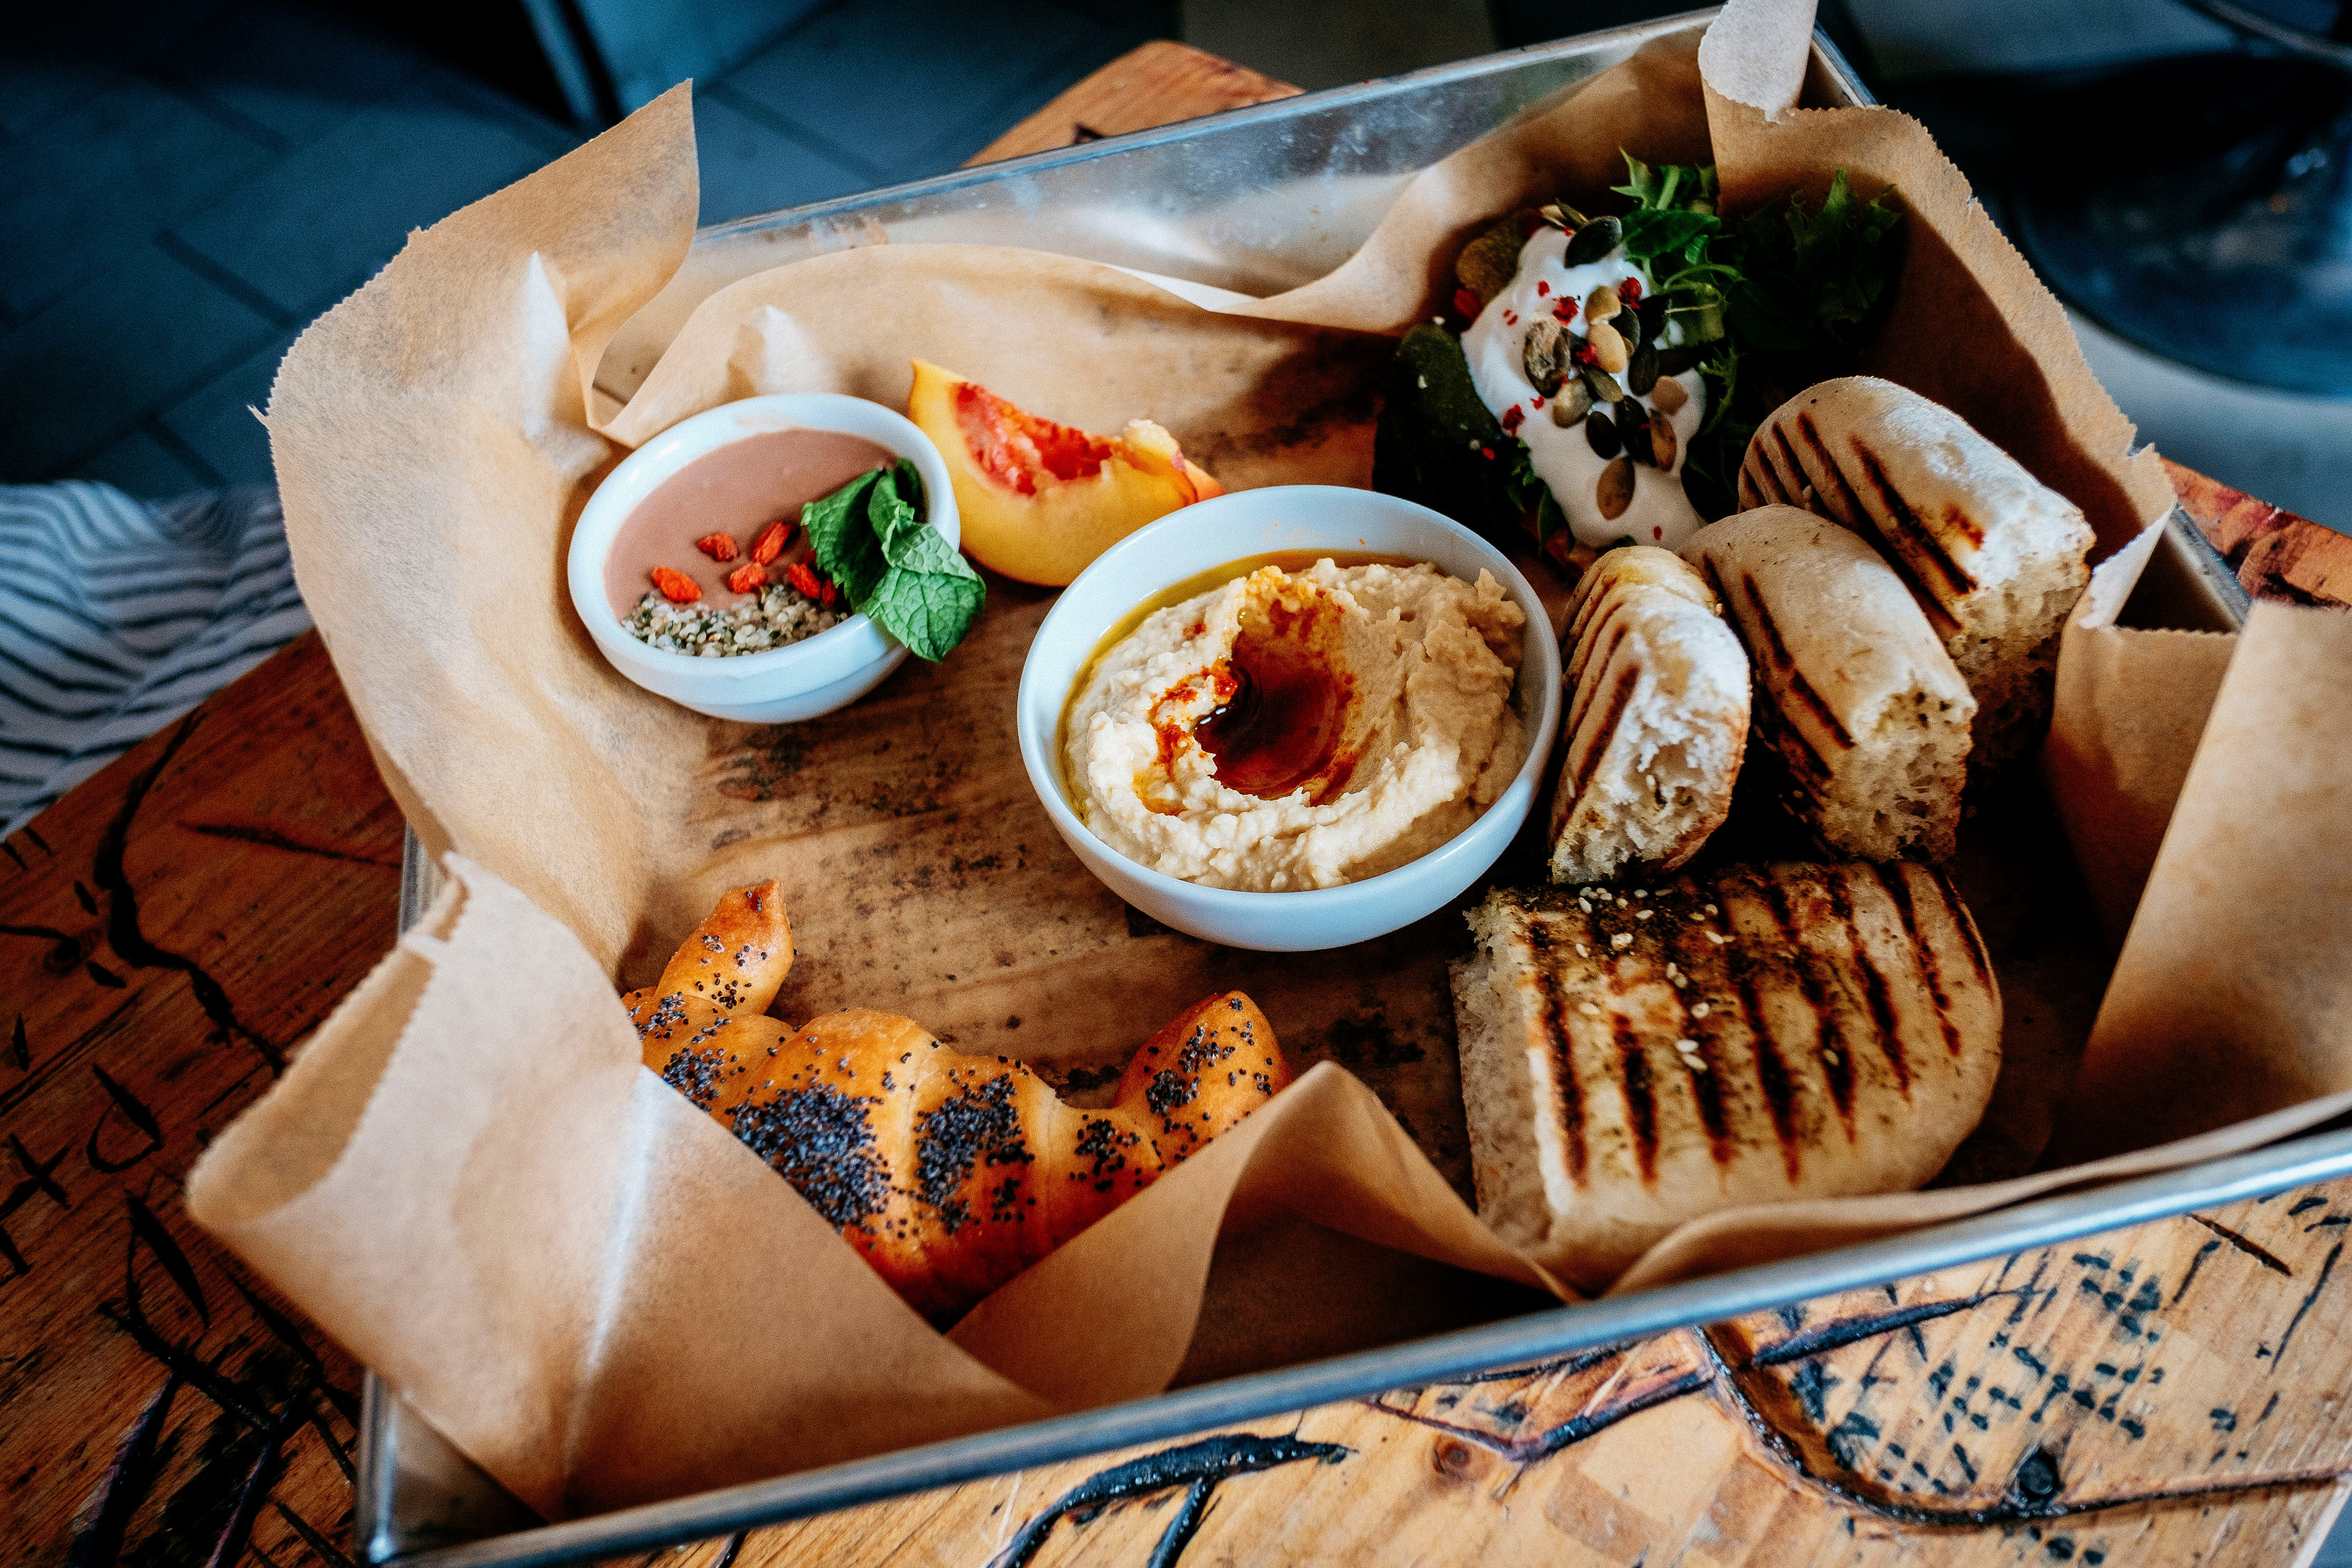 Chargrilled bread, hummus and other dips are arranged in a metal tray lined with baking parchment as part of the Taste of Prague Food Tour.